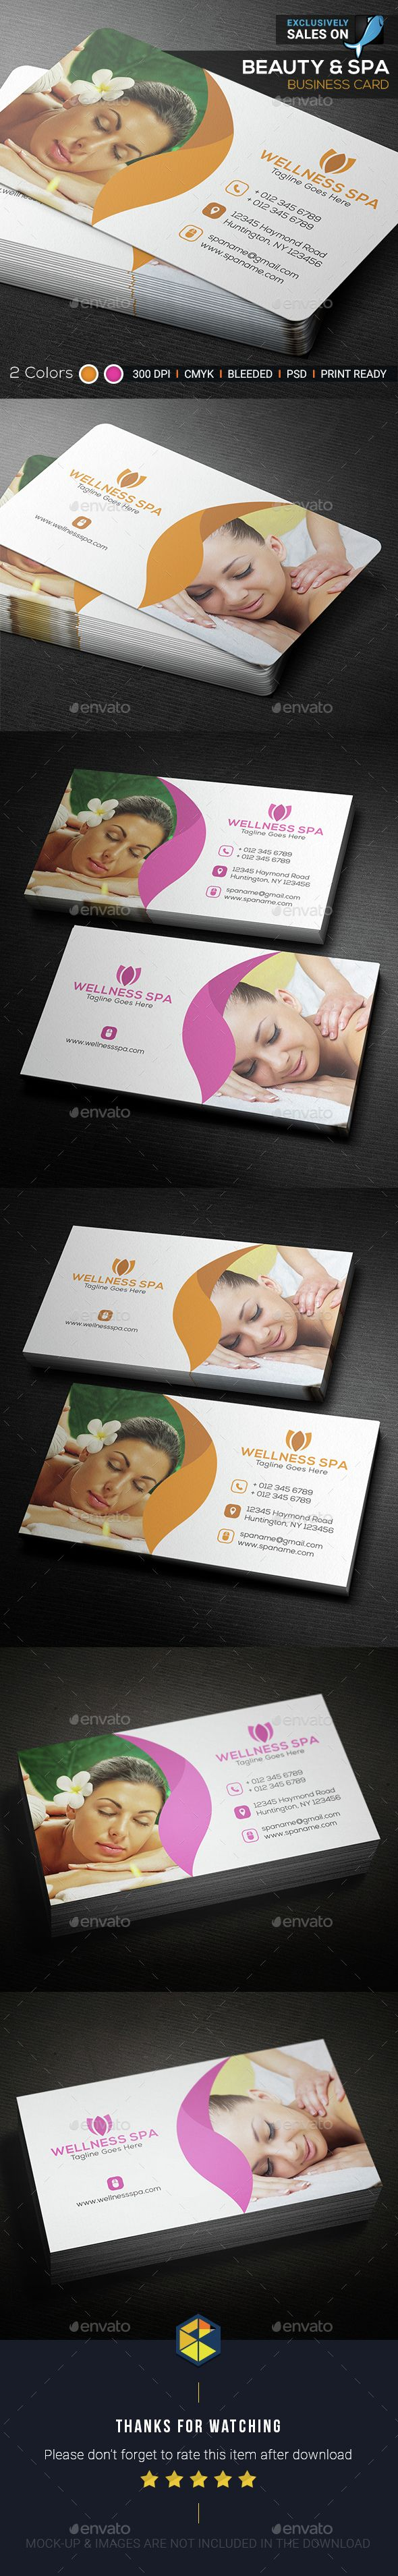 Beauty Spa Business Card Corporate Business Cards Download